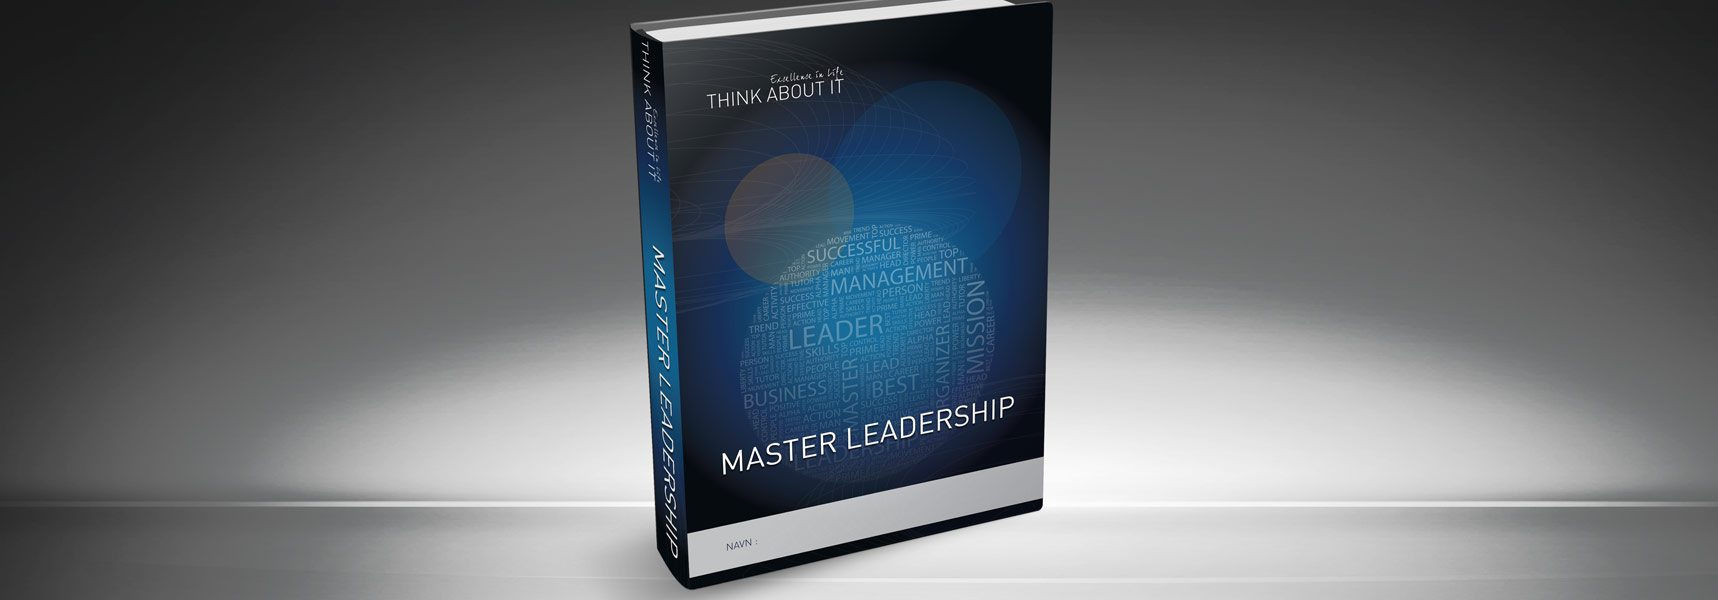 thinkaboutit-masterleadership